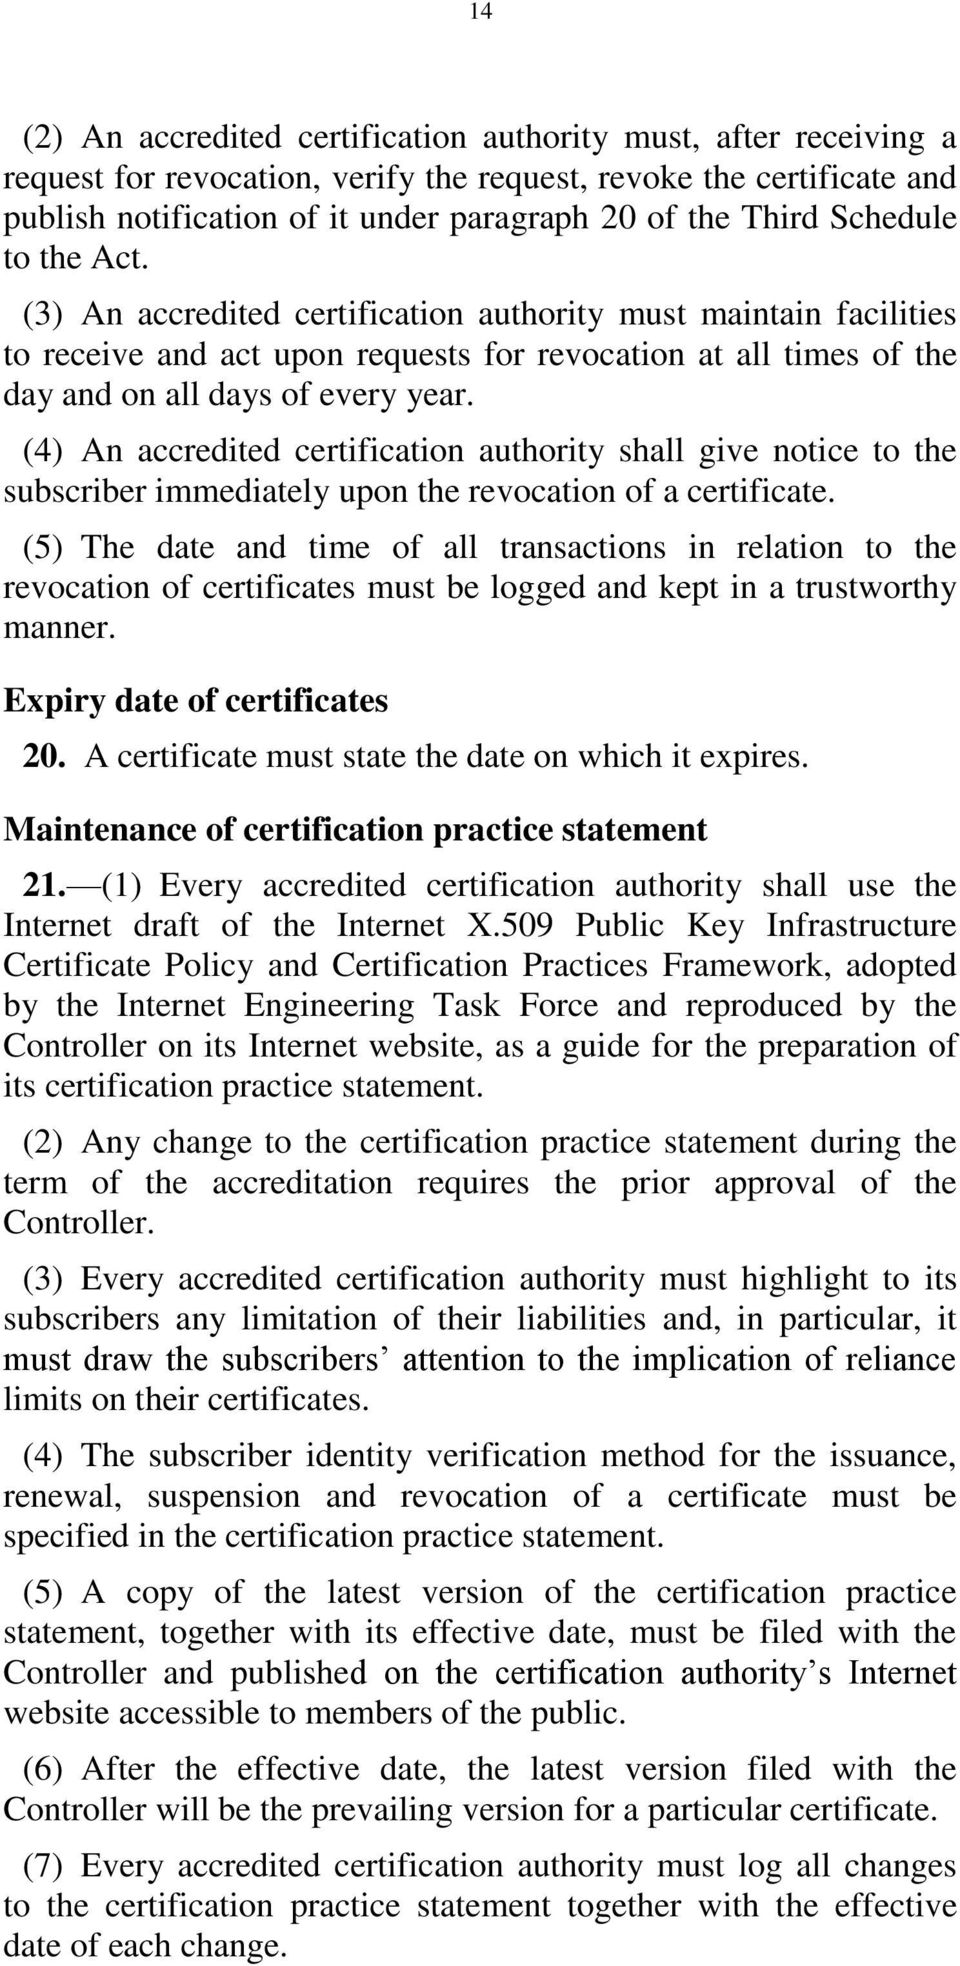 (4) An accredited certification authority shall give notice to the subscriber immediately upon the revocation of a certificate.